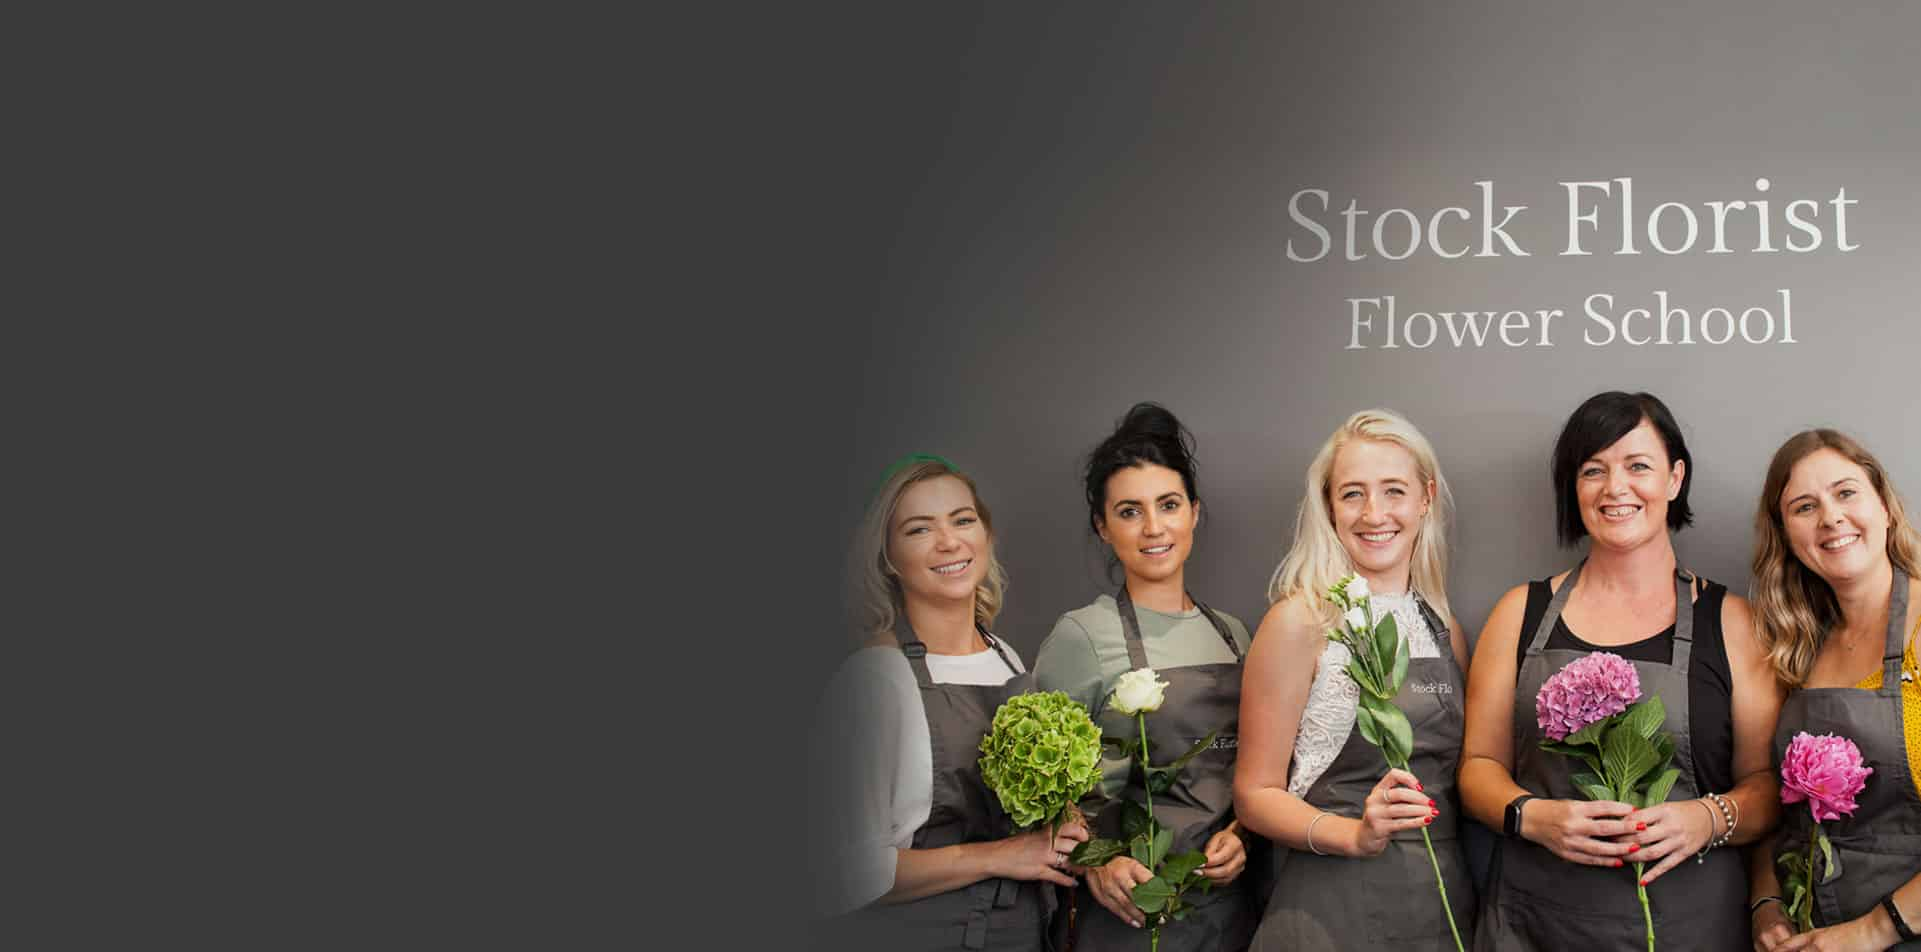 Stock Florist Team Header Image